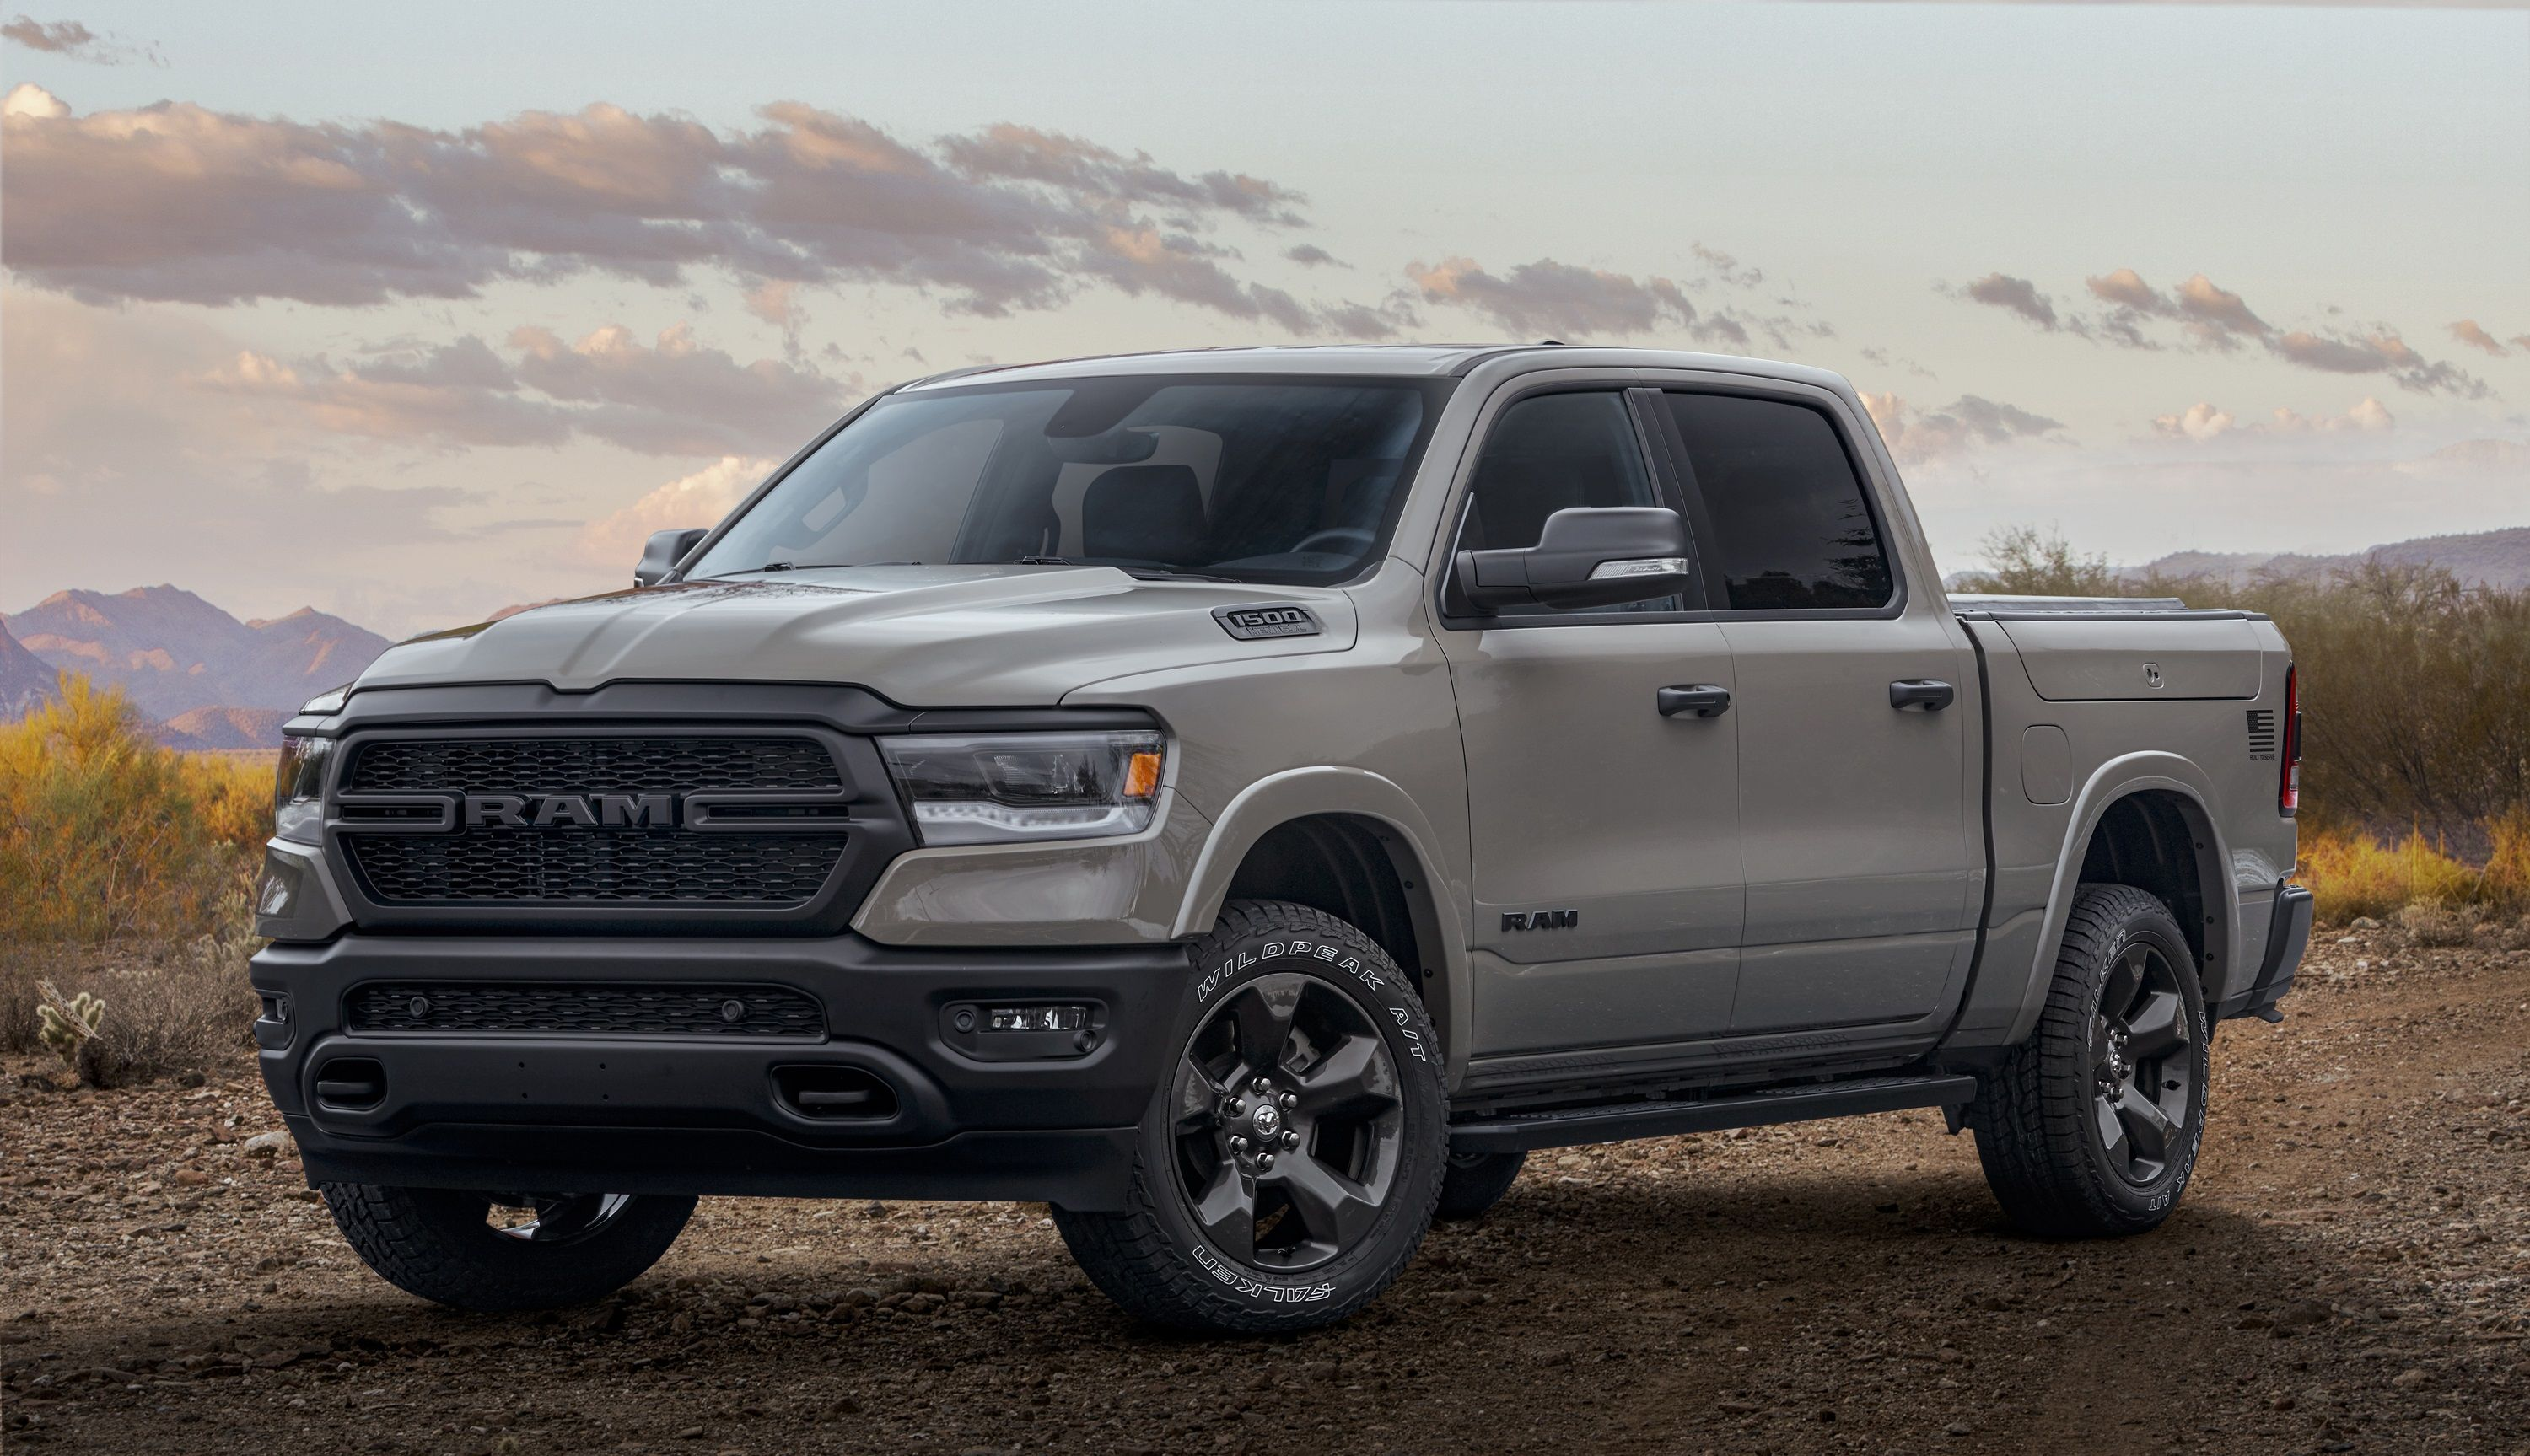 Ram Built To Serve Edition Honors The Five Branches Of The U S Military